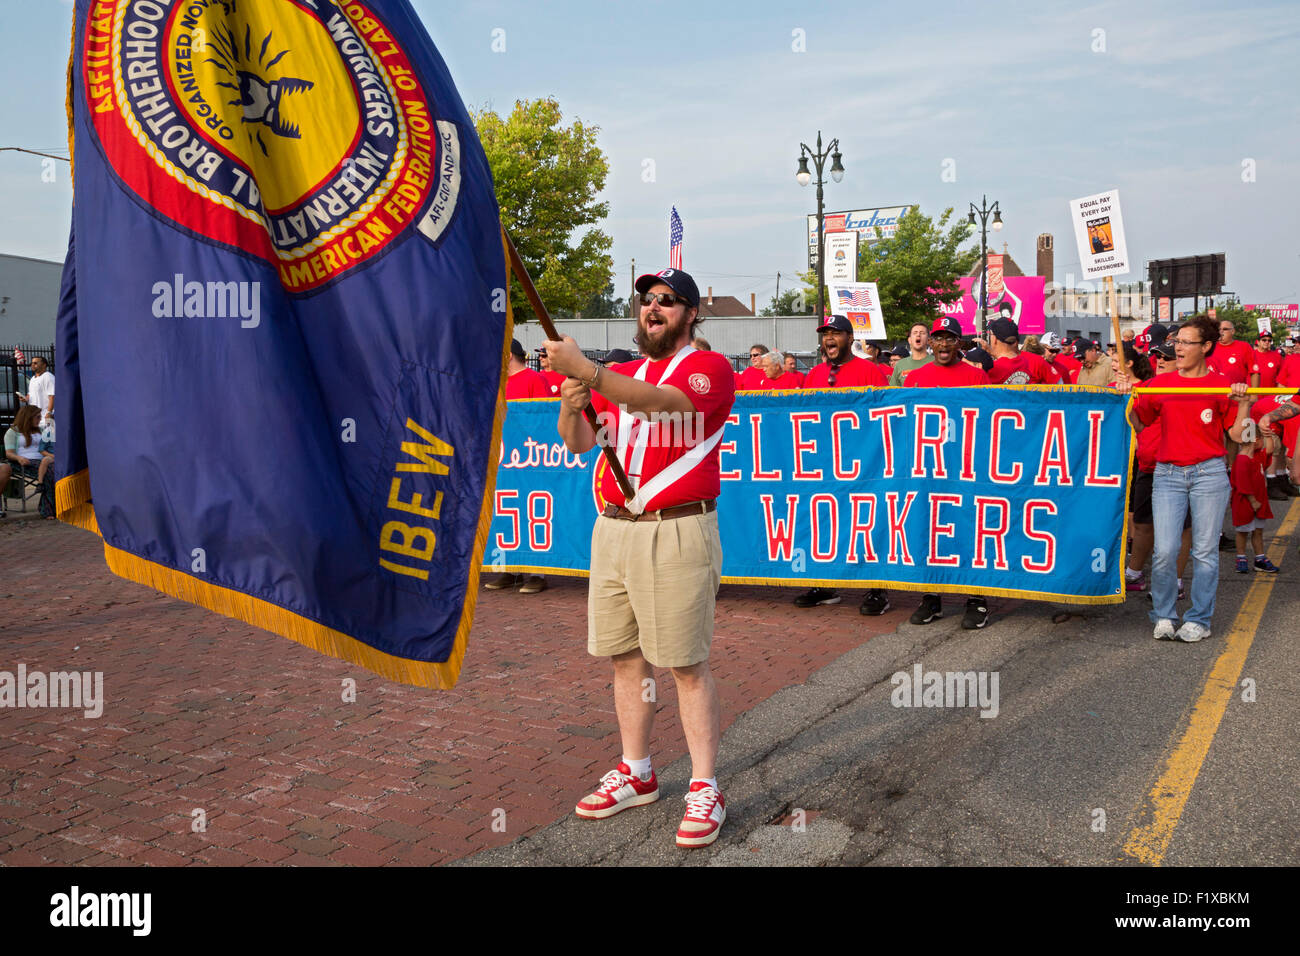 Detroit, Michigan - Members of the International Brotherhood of Electrical Workers participate in the Labor Day - Stock Image